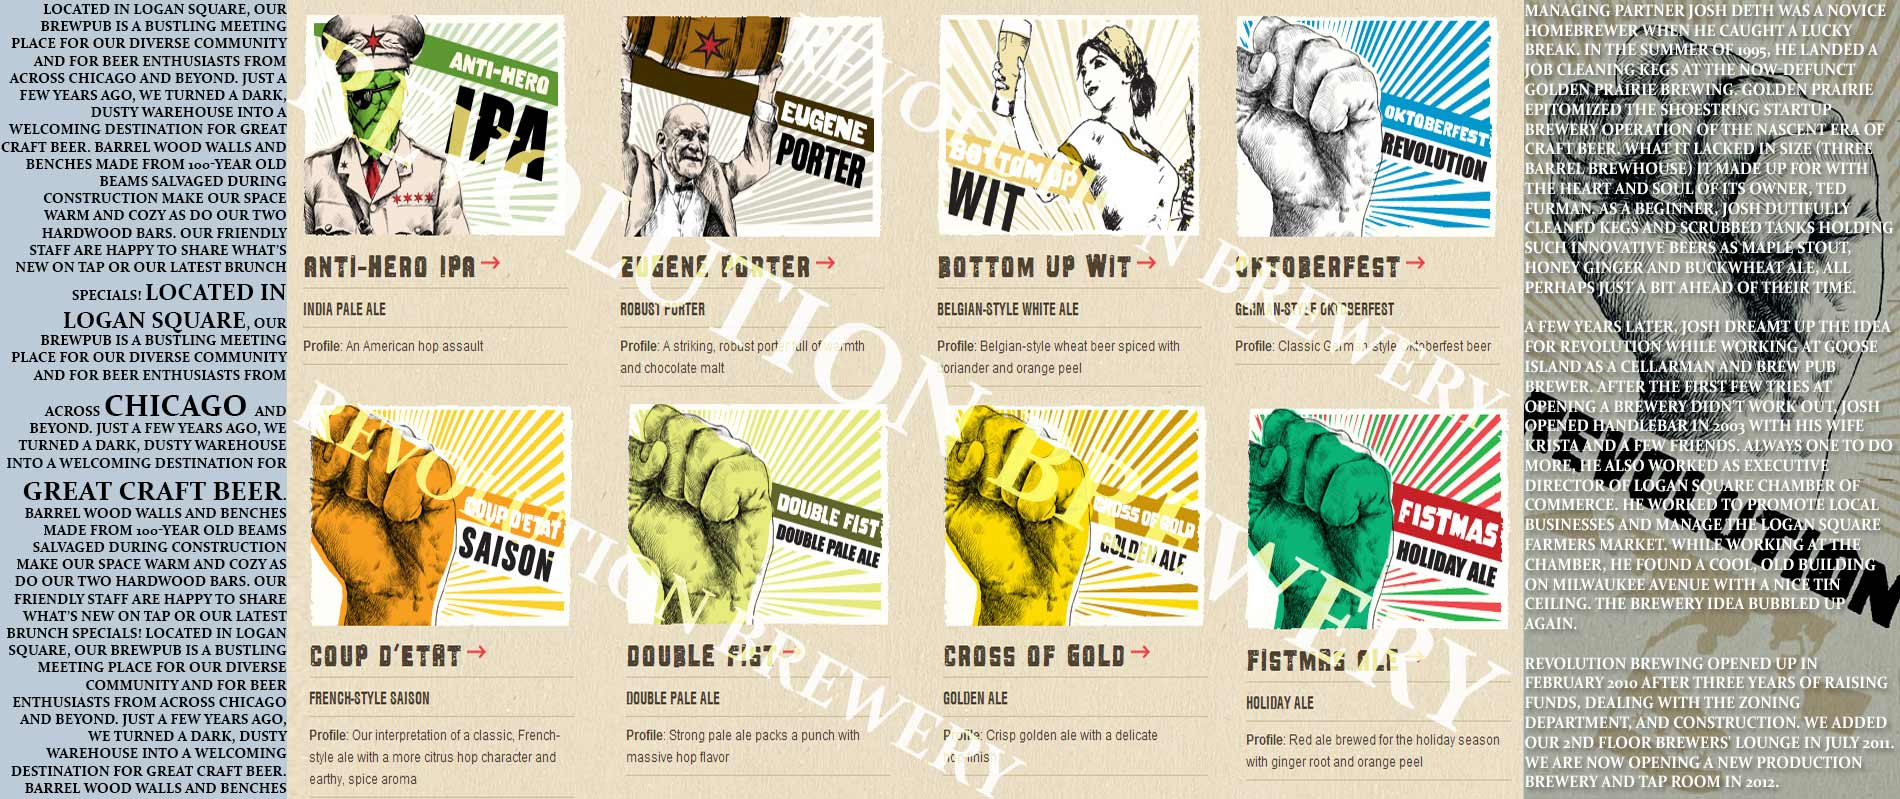 Brewery-Double-Fist-Revolution-cover-image